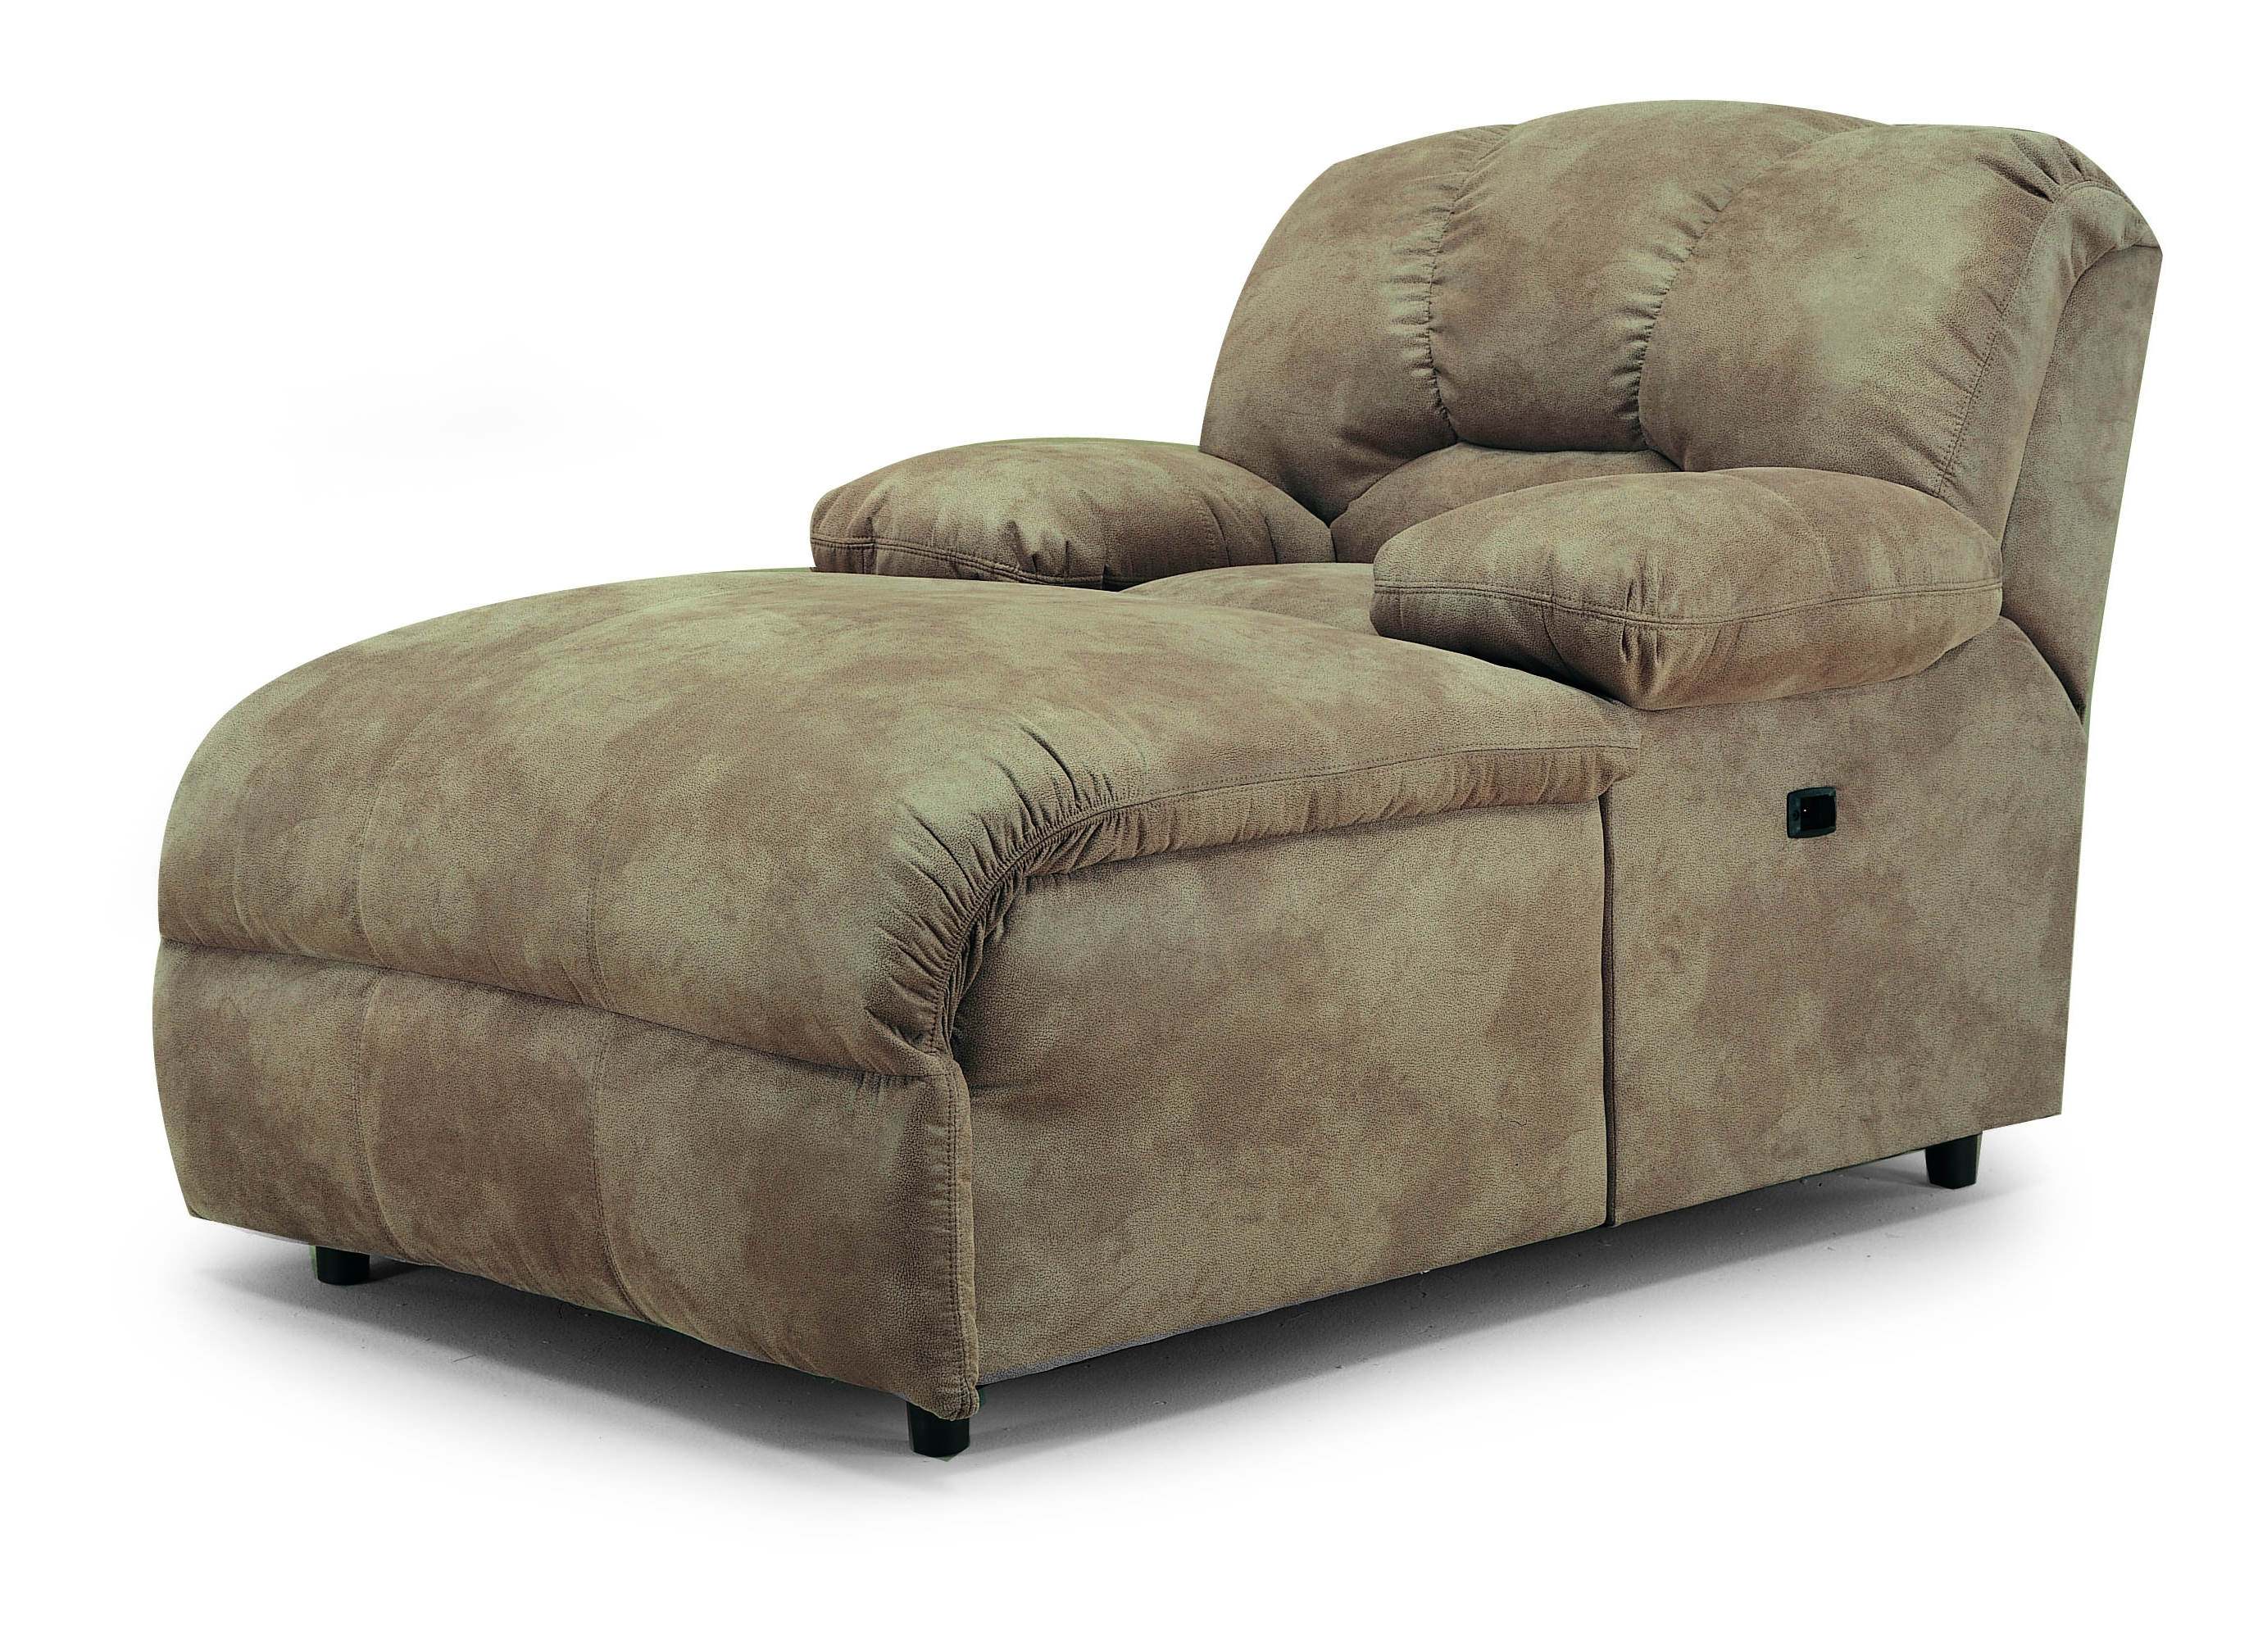 Reclining Chaises Regarding Popular Popular Of Reclining Chaise Lounge With Recliner Chaise Lounge My (View 11 of 15)